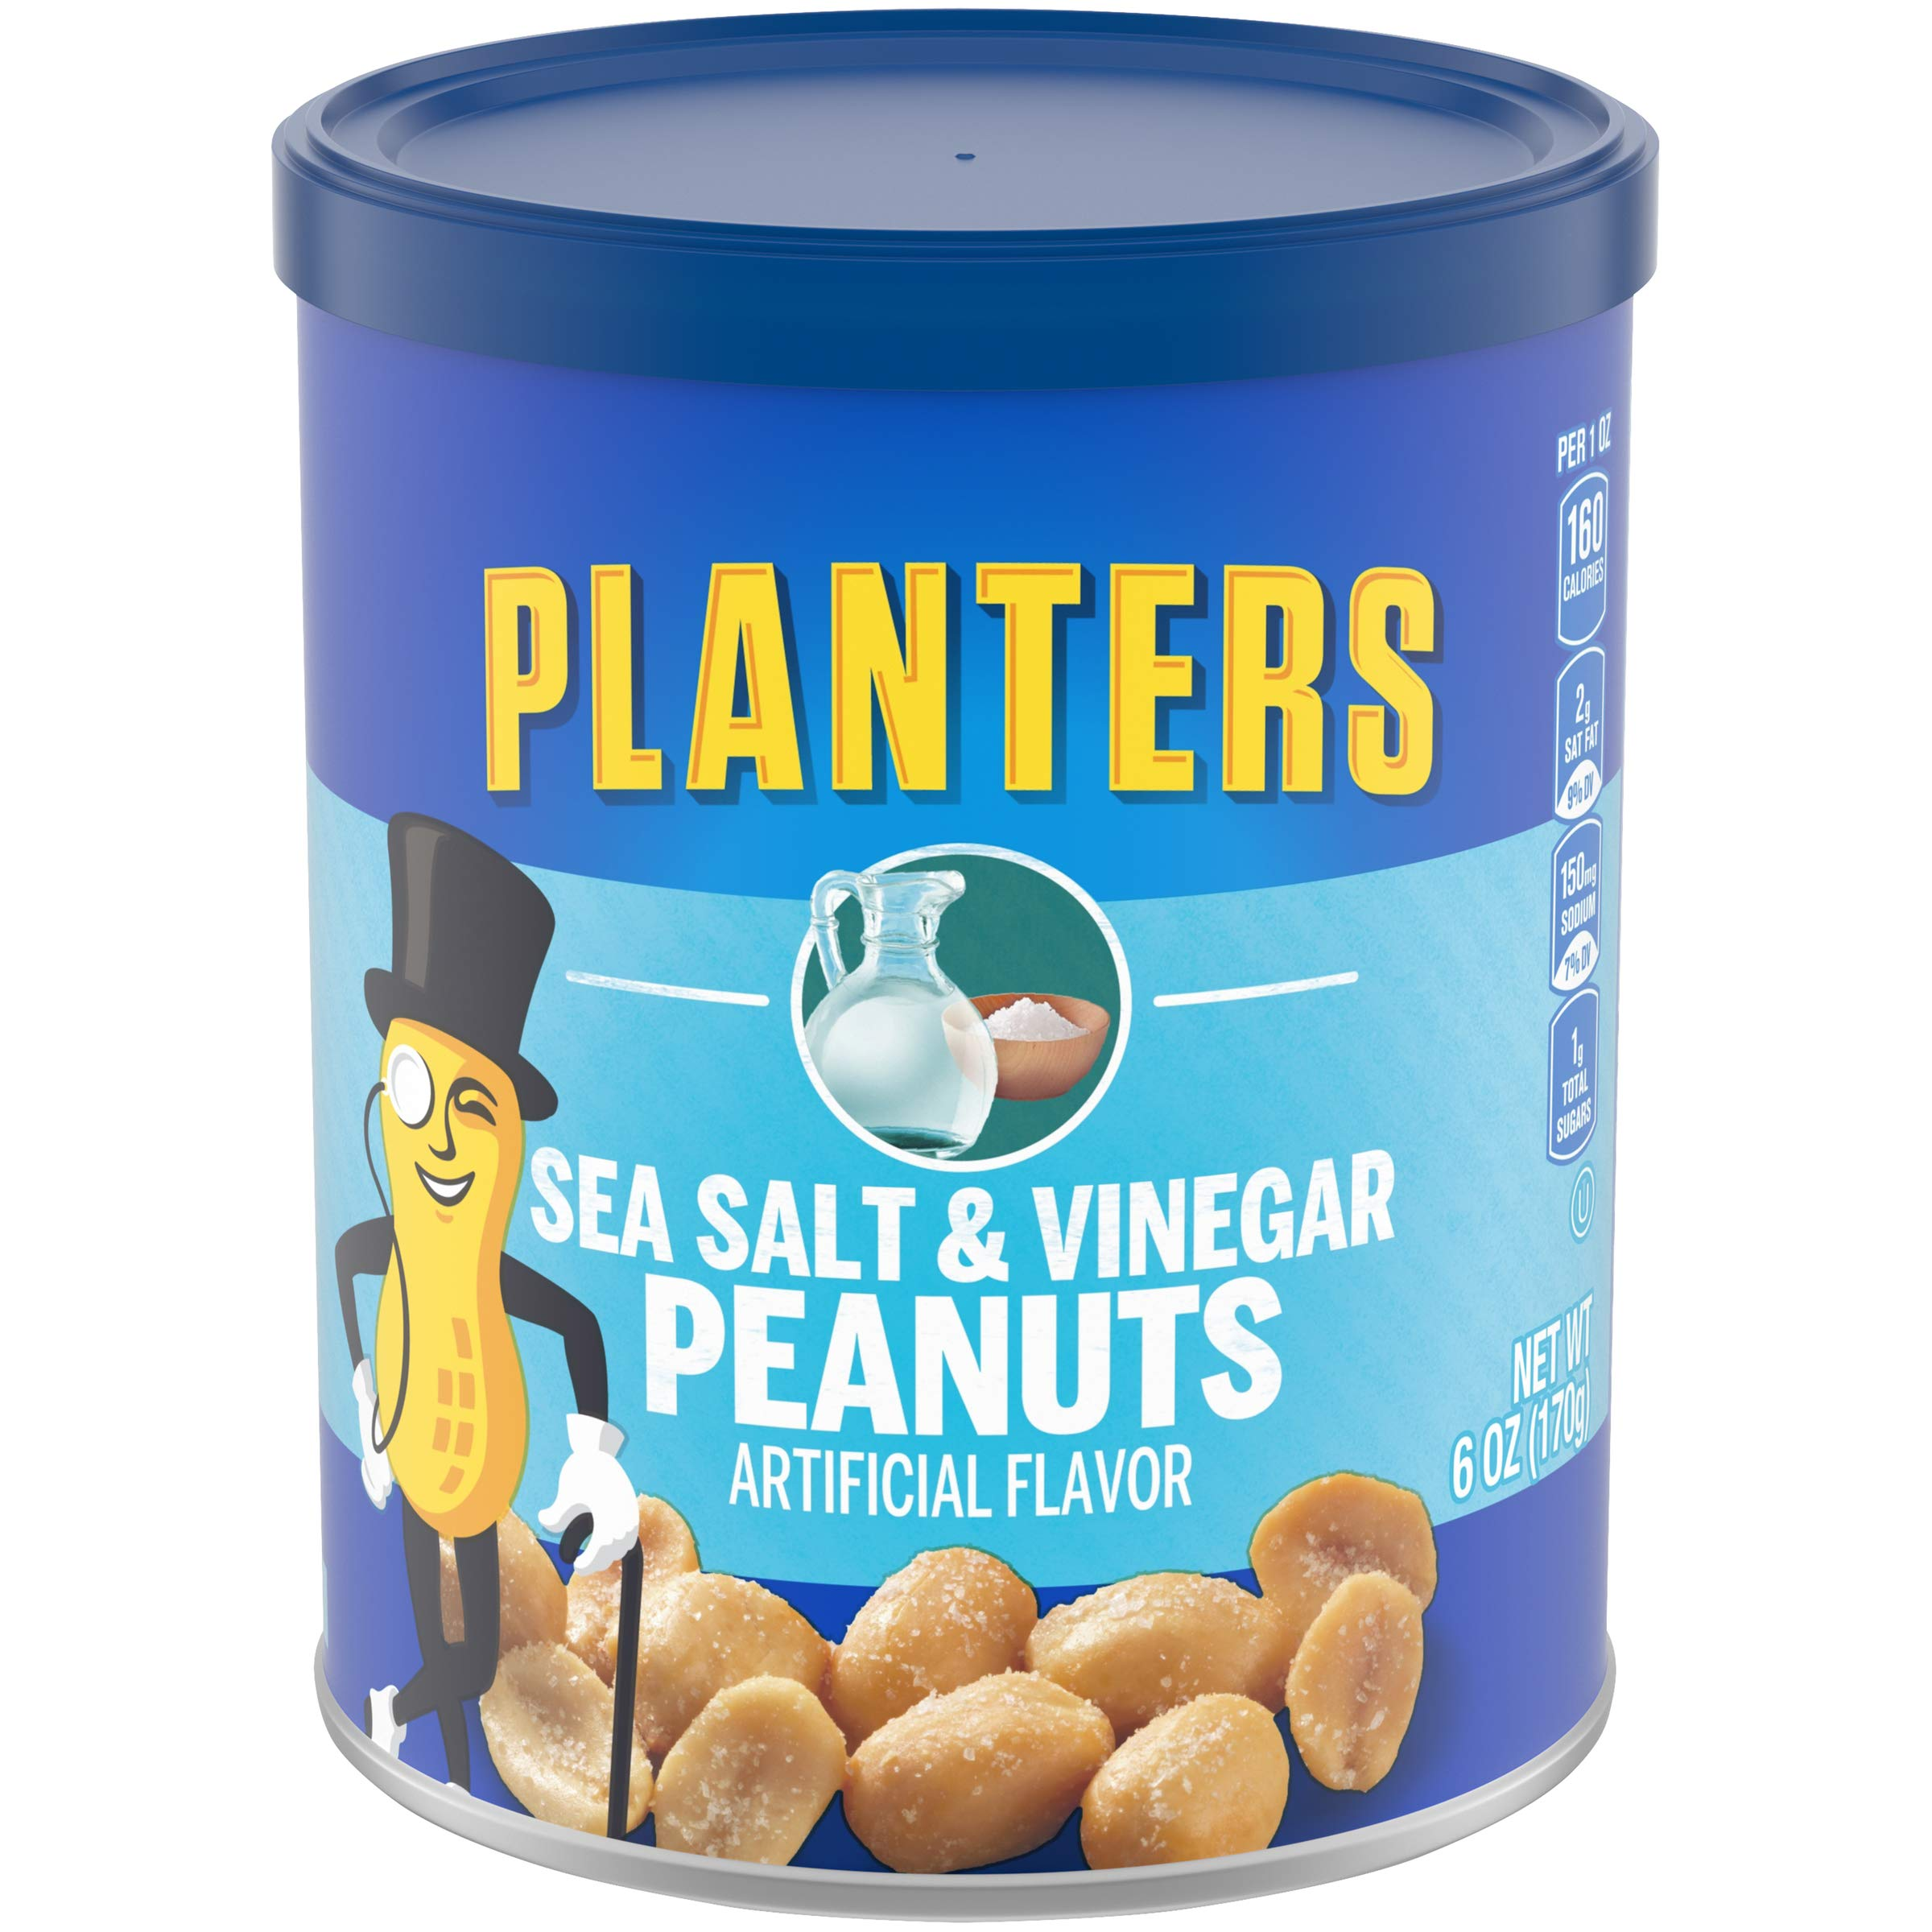 Planters Salt & Vinegar Peanuts (6 oz Canister, Pack of 8) by Planters